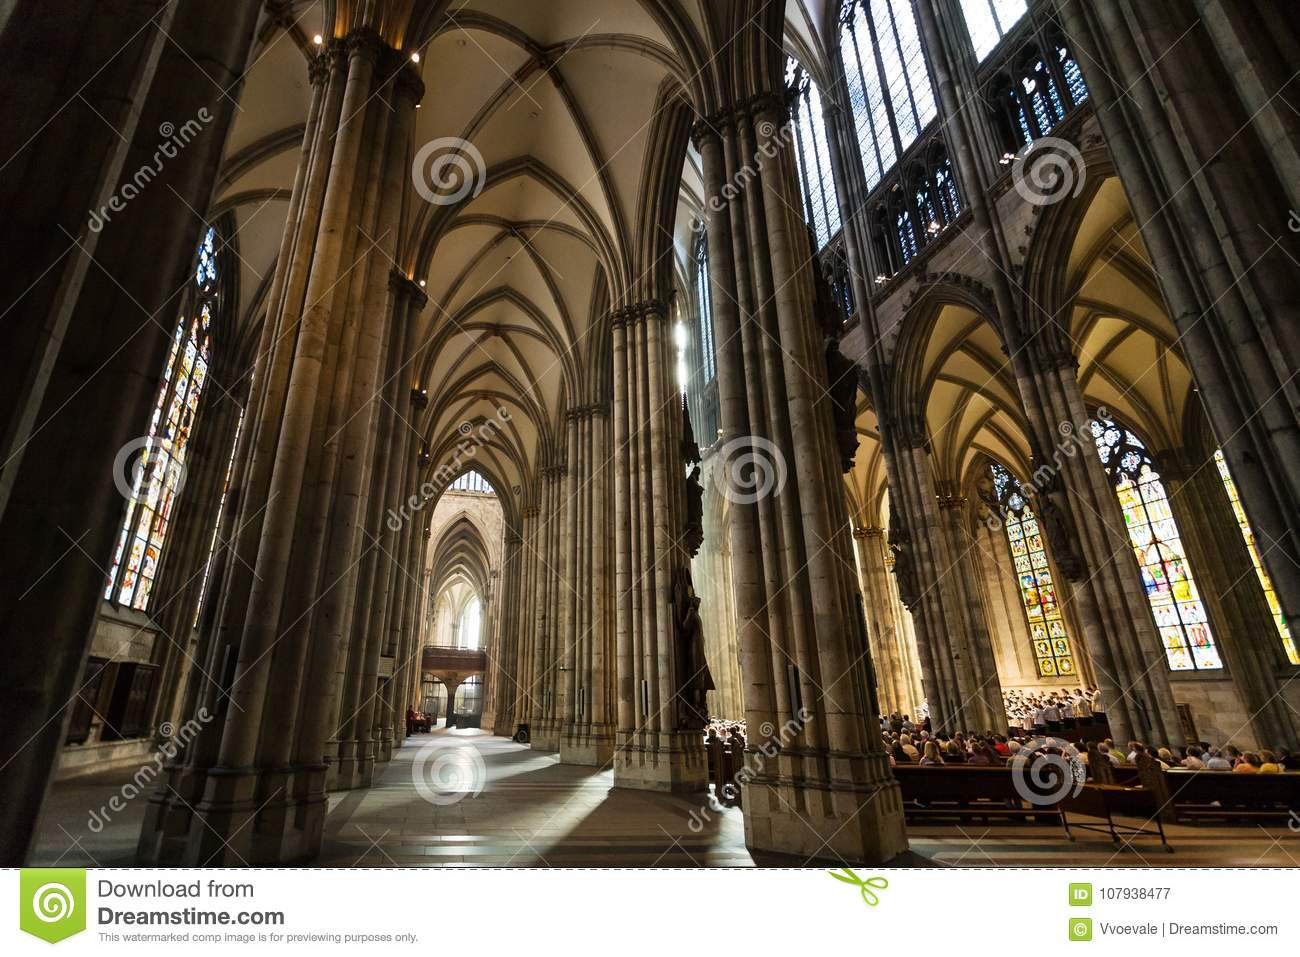 People in church service in Cologne Cathedral